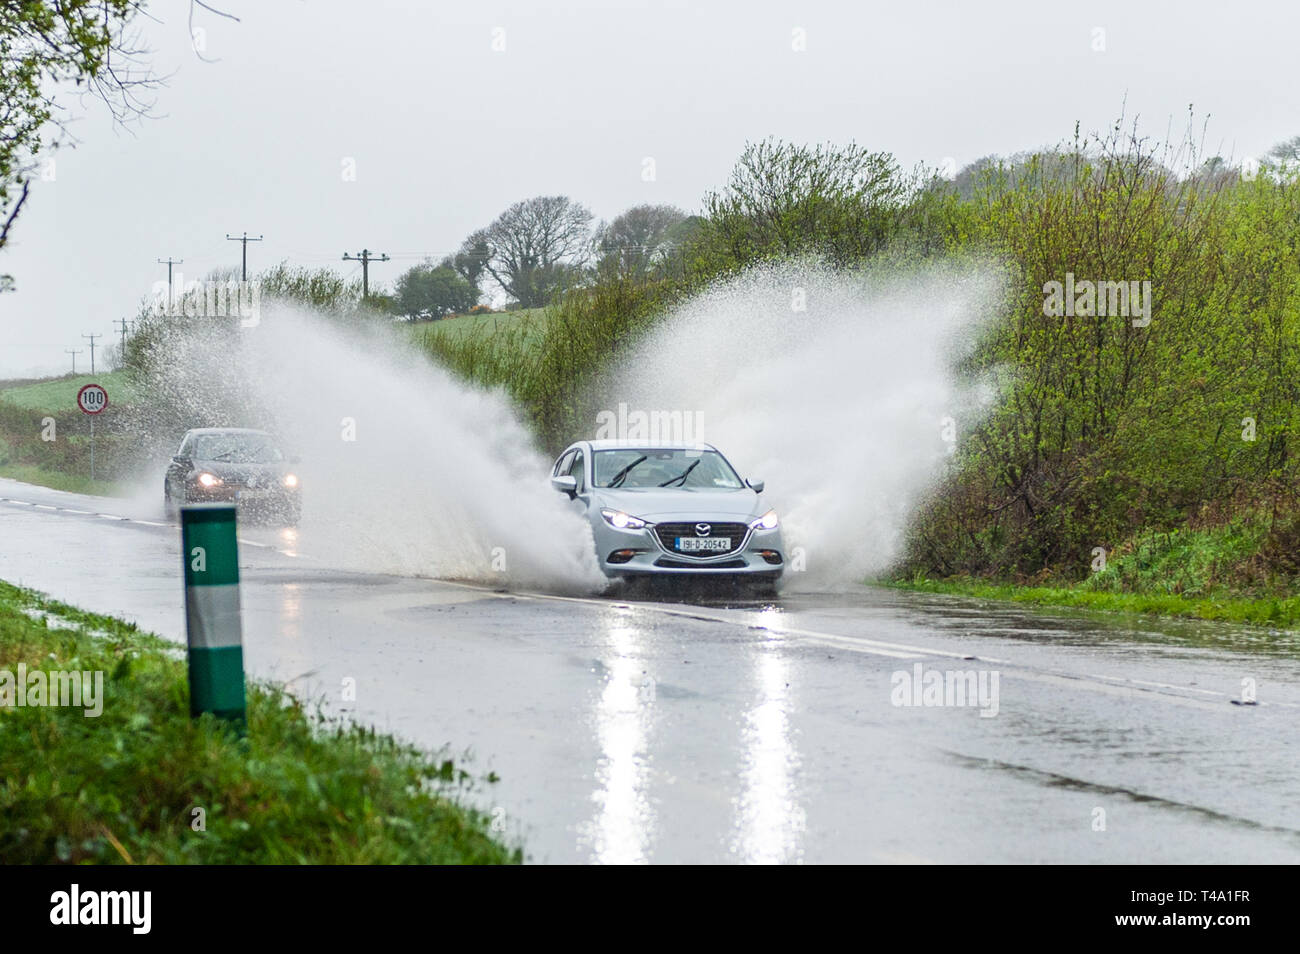 skibbereen-west-cork-ireland-15th-apr-2019-much-of-ireland-is-currently-in-the-midst-of-a-status-orange-rainfall-warning-issued-by-met-ireann-a-car-races-through-a-spot-flood-on-the-n71-near-skibbereen-credit-andy-gibsonalamy-live-news-T4A1FR.jpg